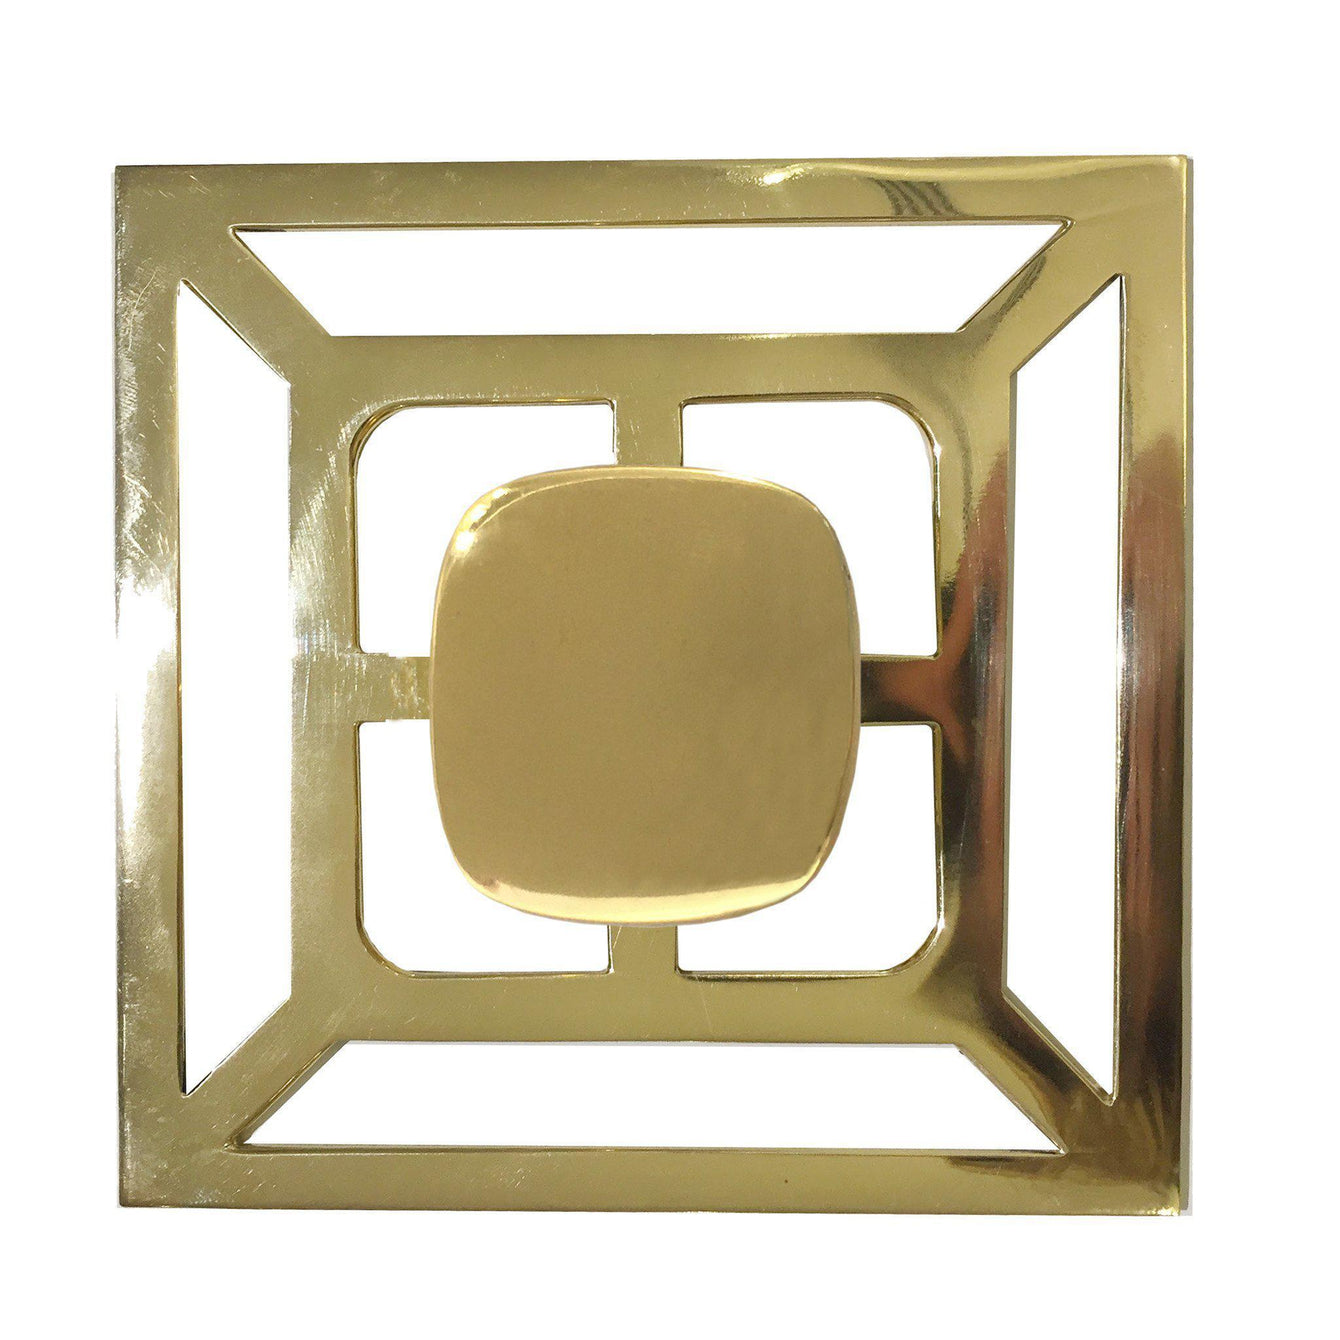 Solid Brass Benson Pull with Backplate-Home - decor - Drawer Hardware-ADDISON WEEKS-Peccadilly